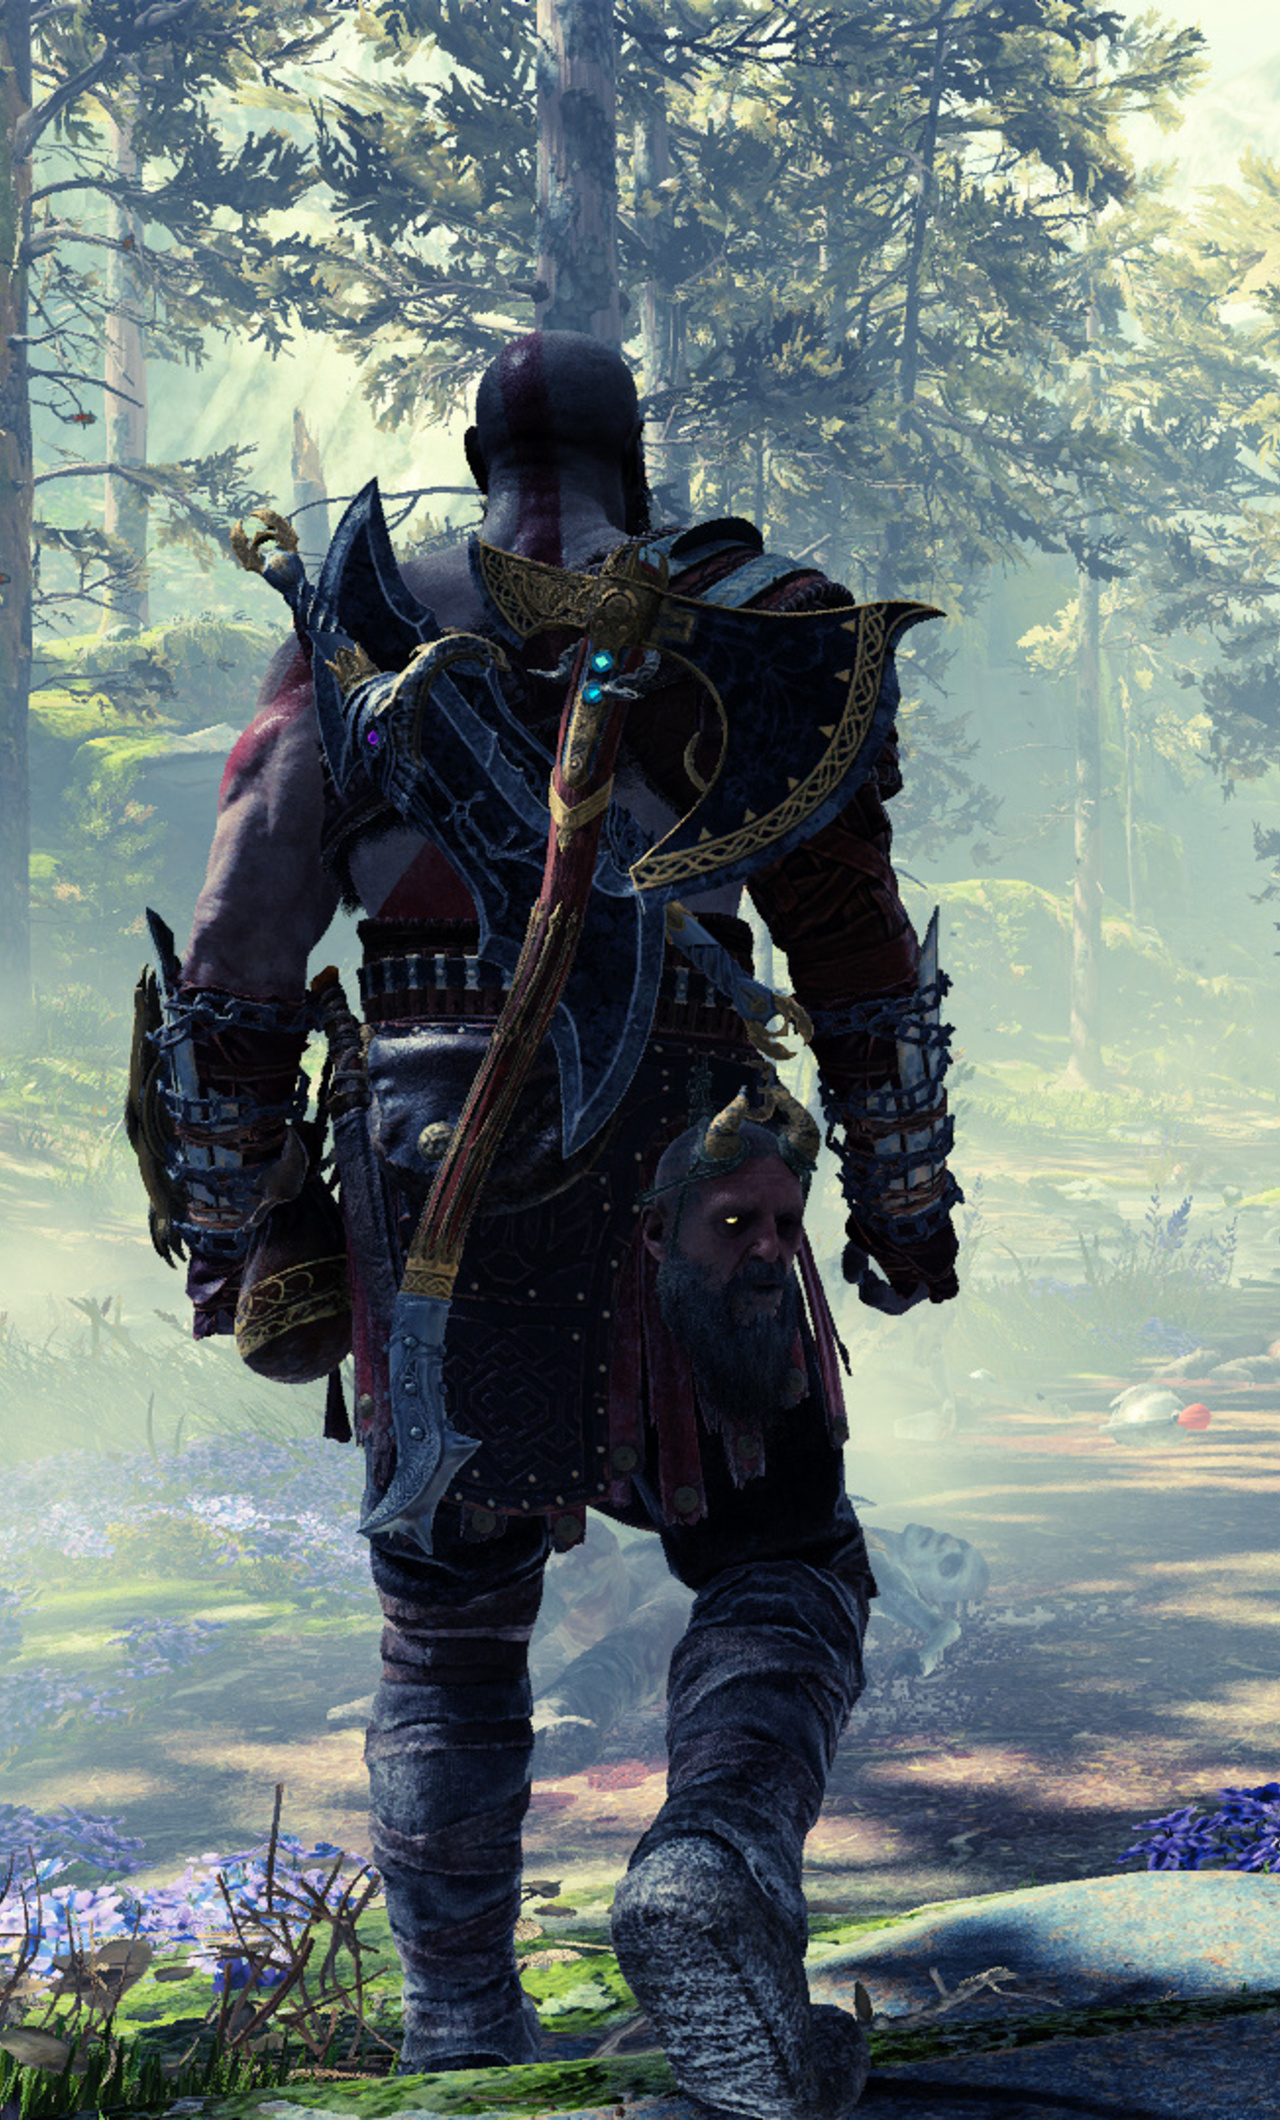 1280x2120 Game God Of War 4 1080p Iphone 6 Hd 4k Wallpapers